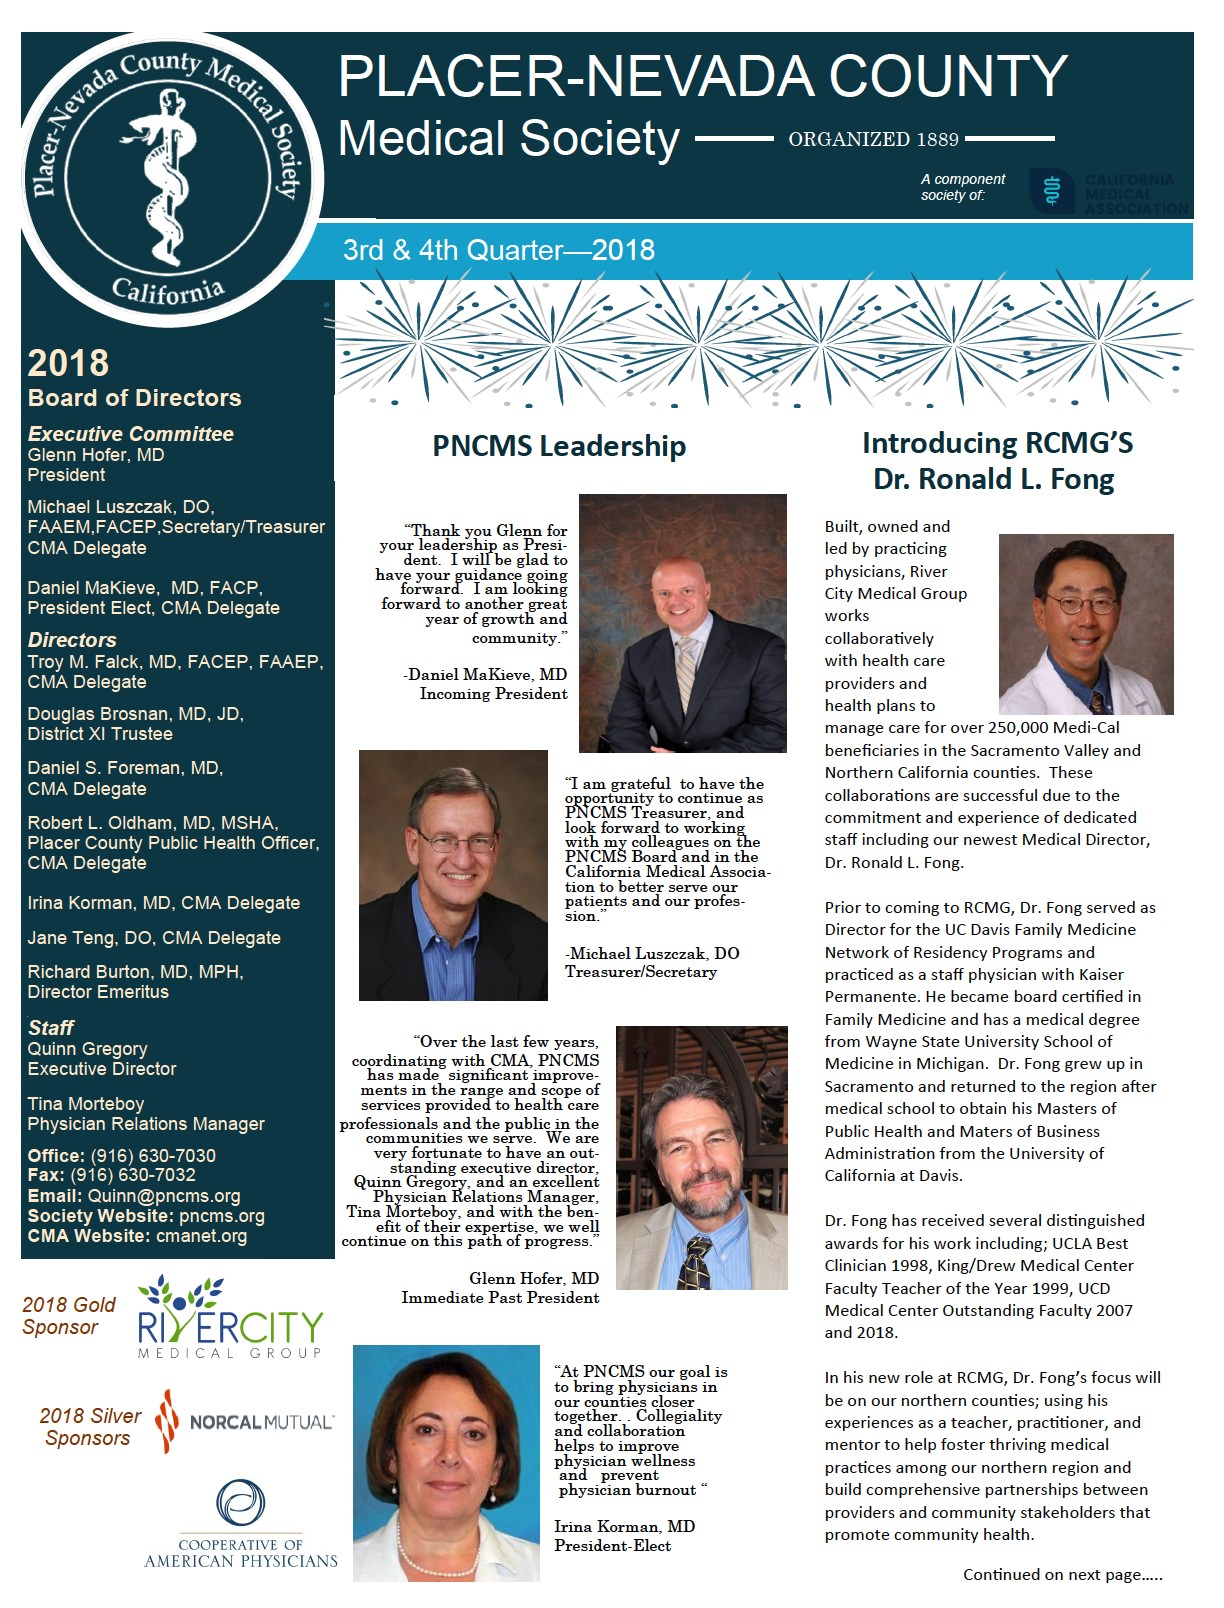 PNCMS Newsletter